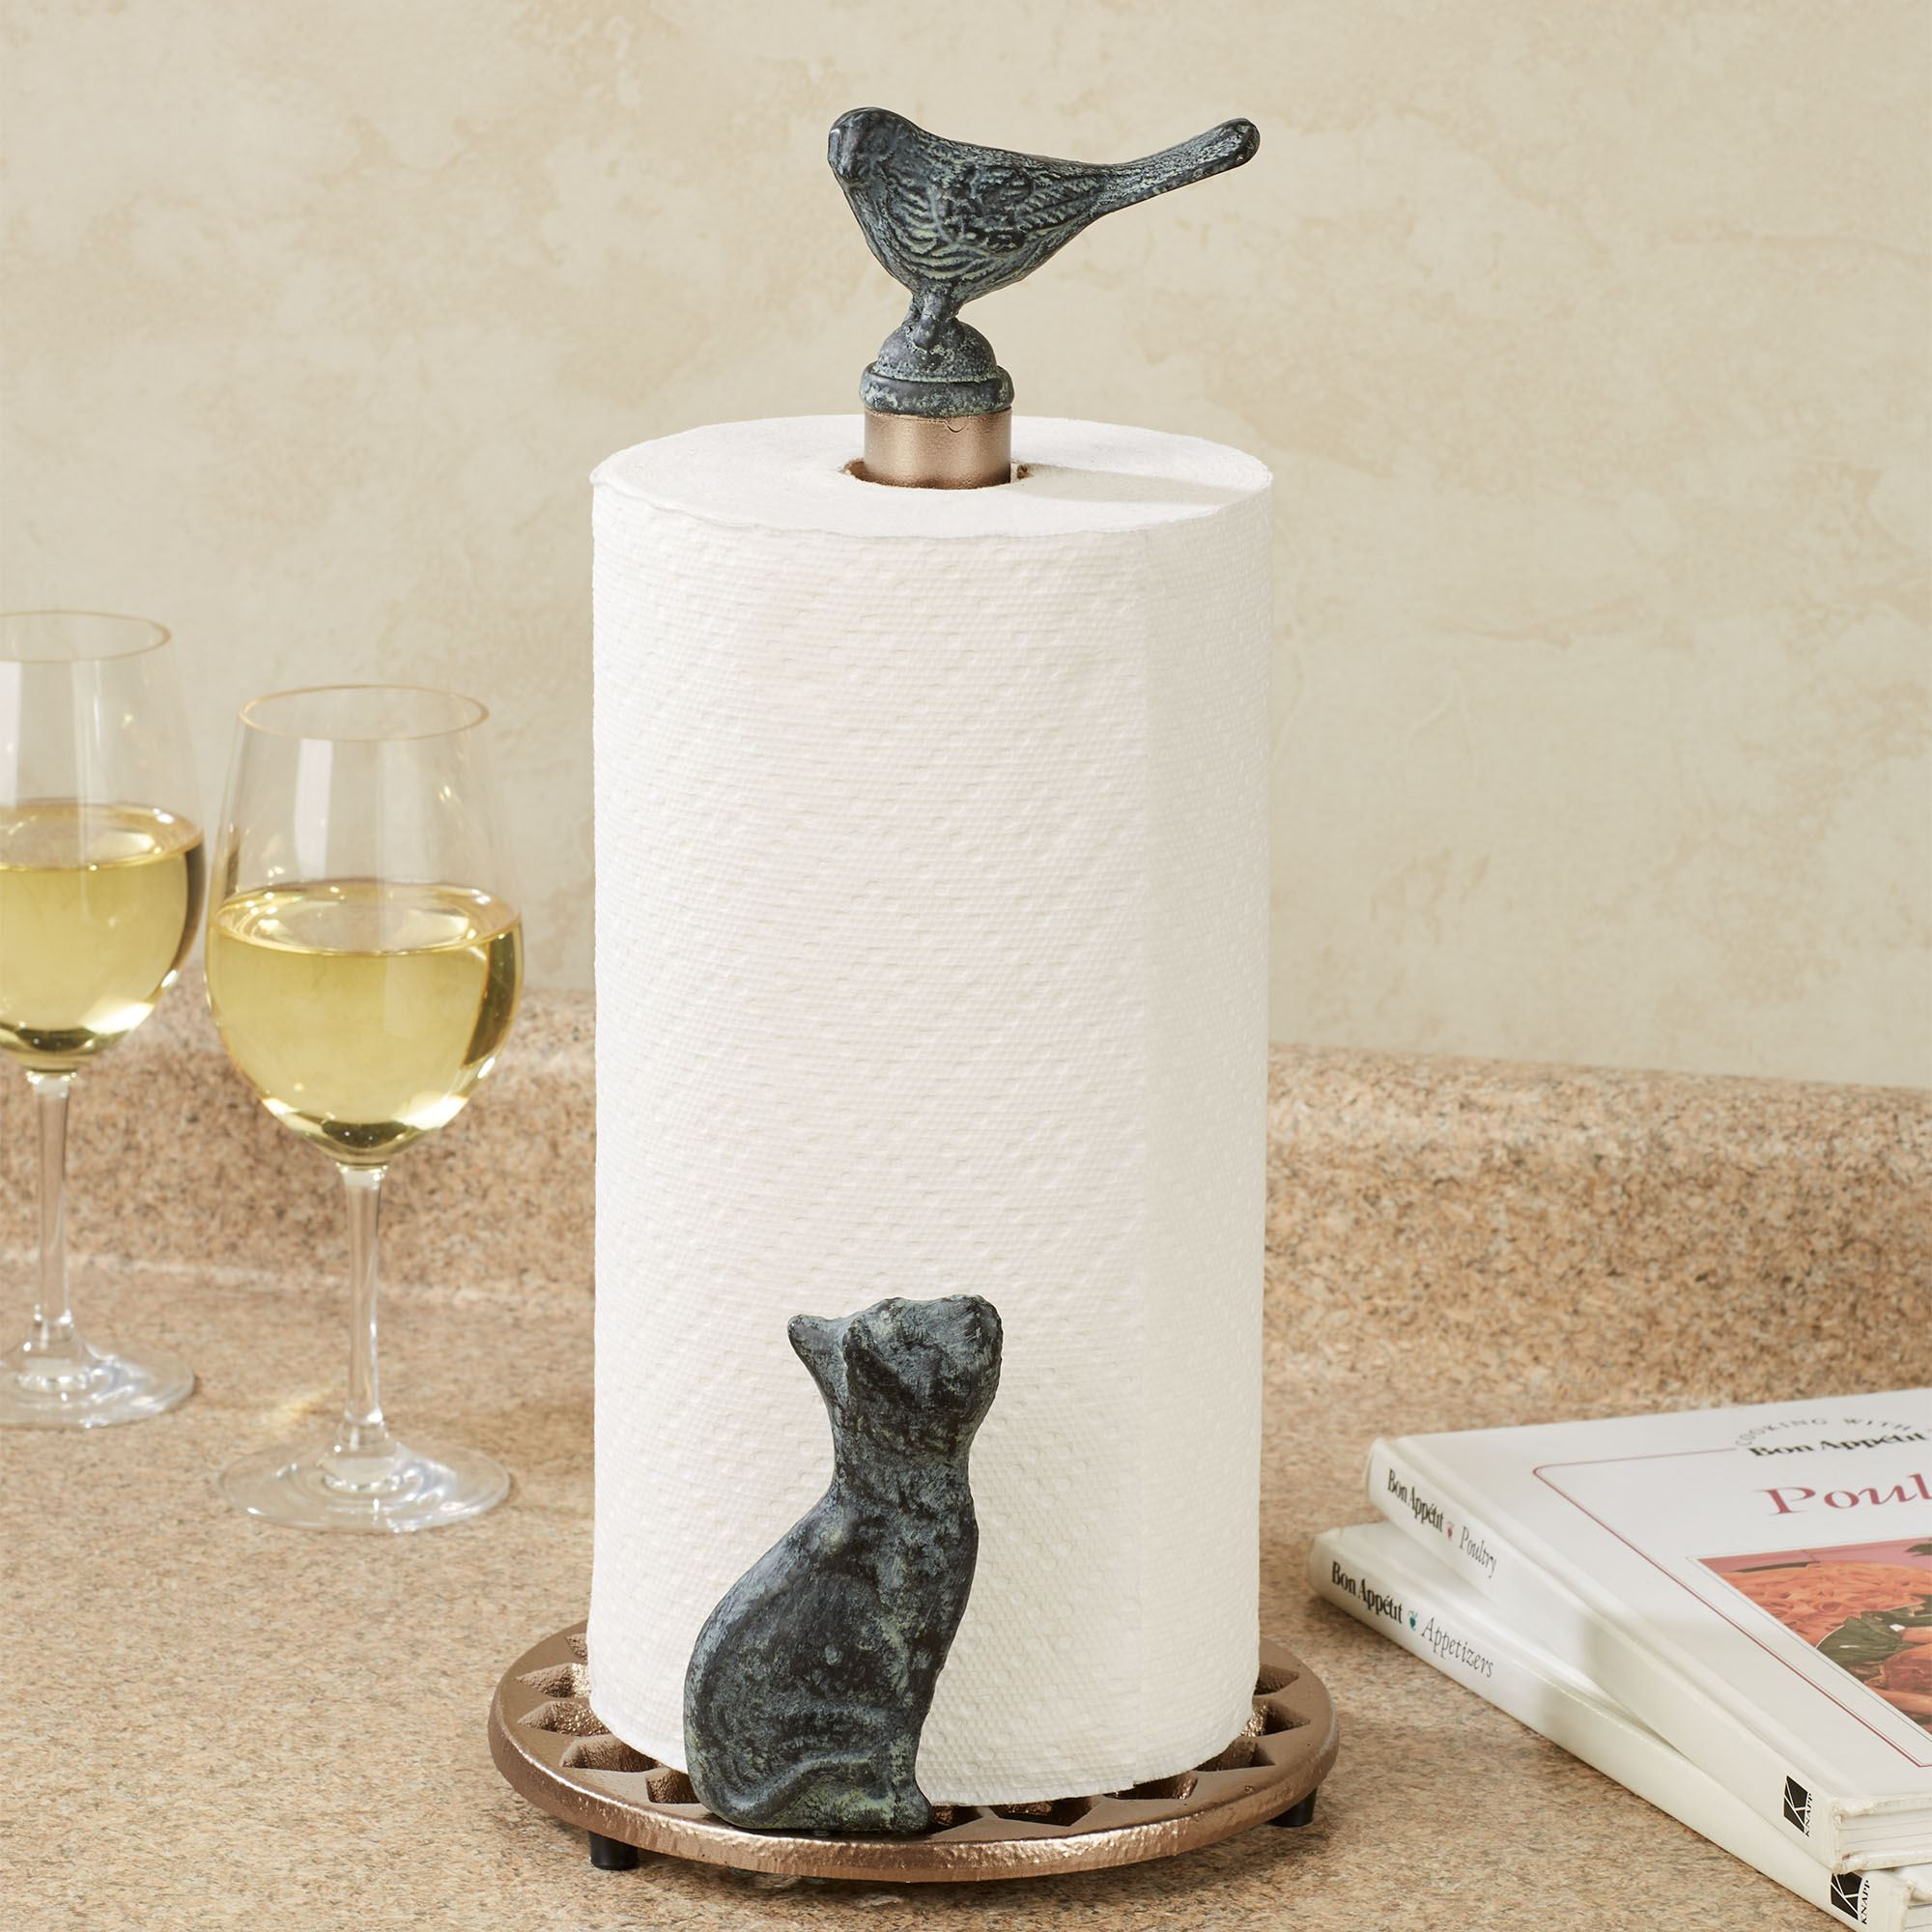 ideas simple holder home bar bathroom holders design towel amazing paper delightful